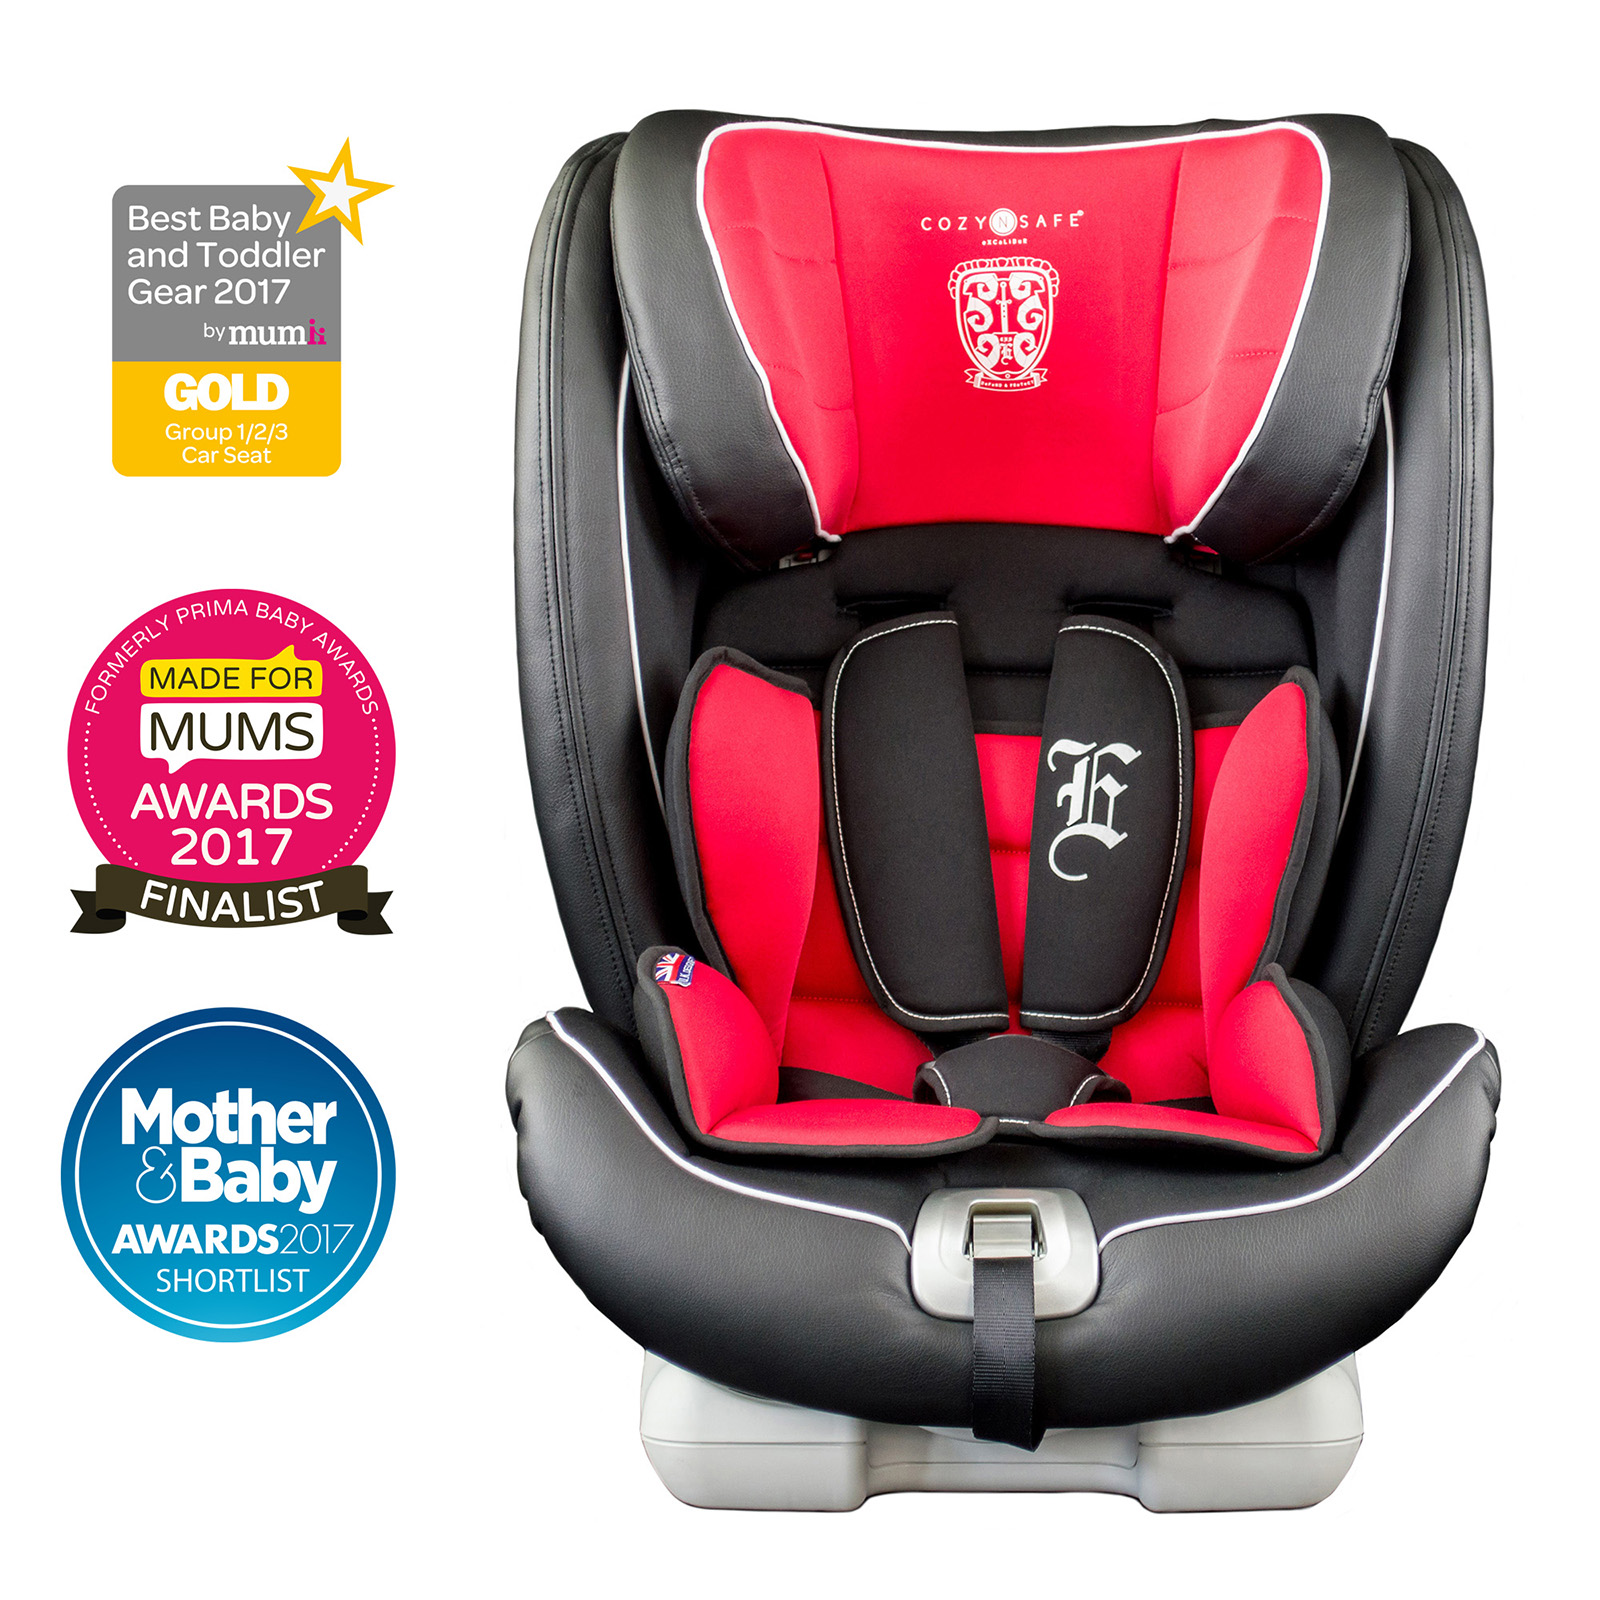 cozy n safe excalibur group 1 2 3 isofix car seat black red buy at online4baby. Black Bedroom Furniture Sets. Home Design Ideas